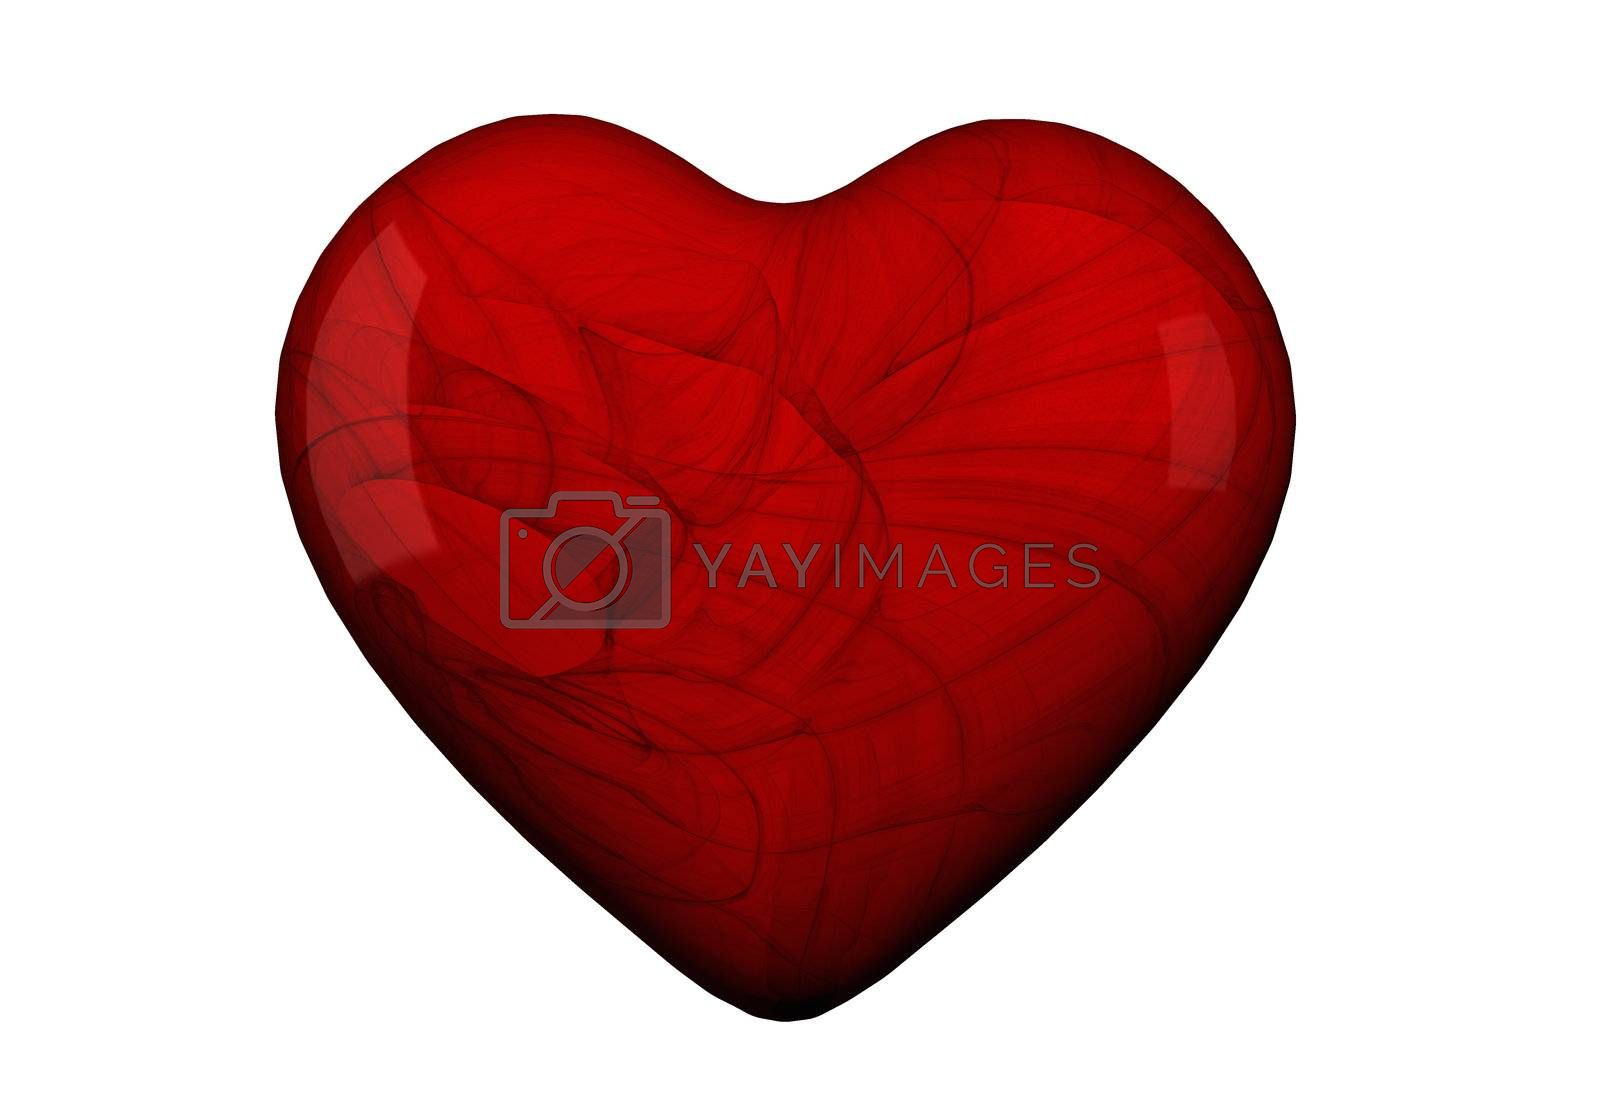 Heart shape in red with textures